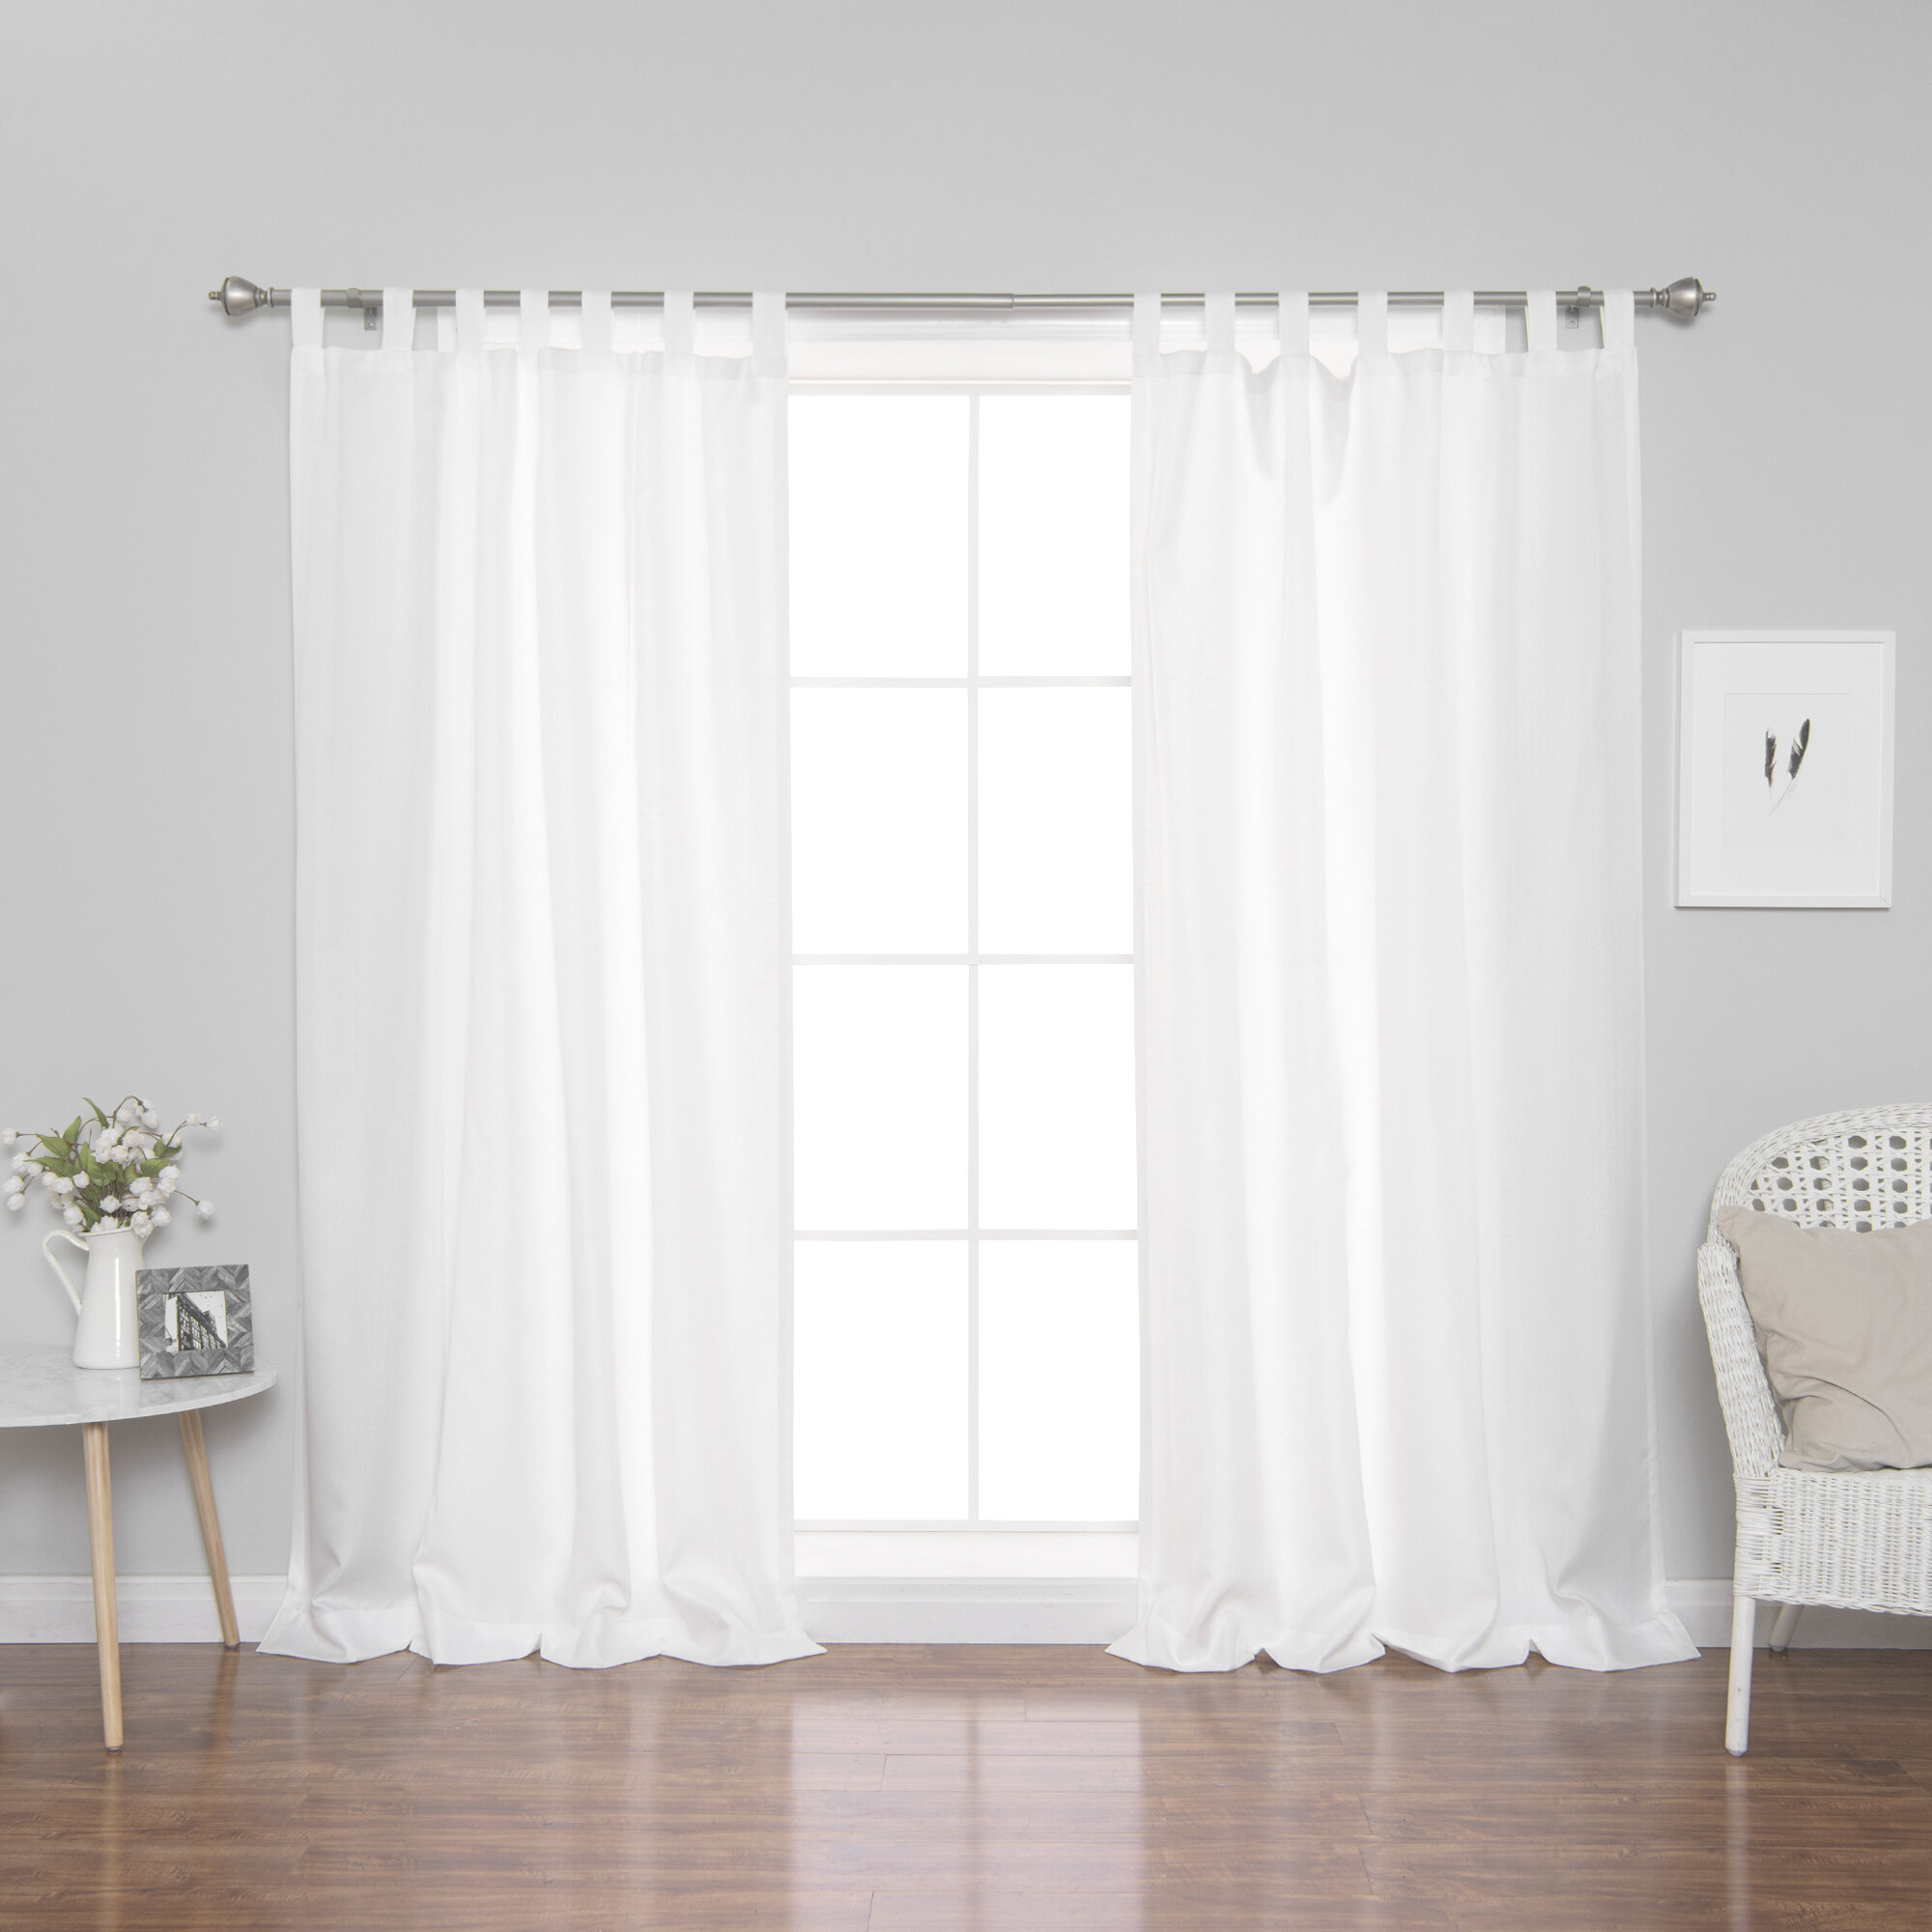 Rosecliff Heights Eaglin Solid Semi Sheer Tab Top Curtain Reviews Wayfair